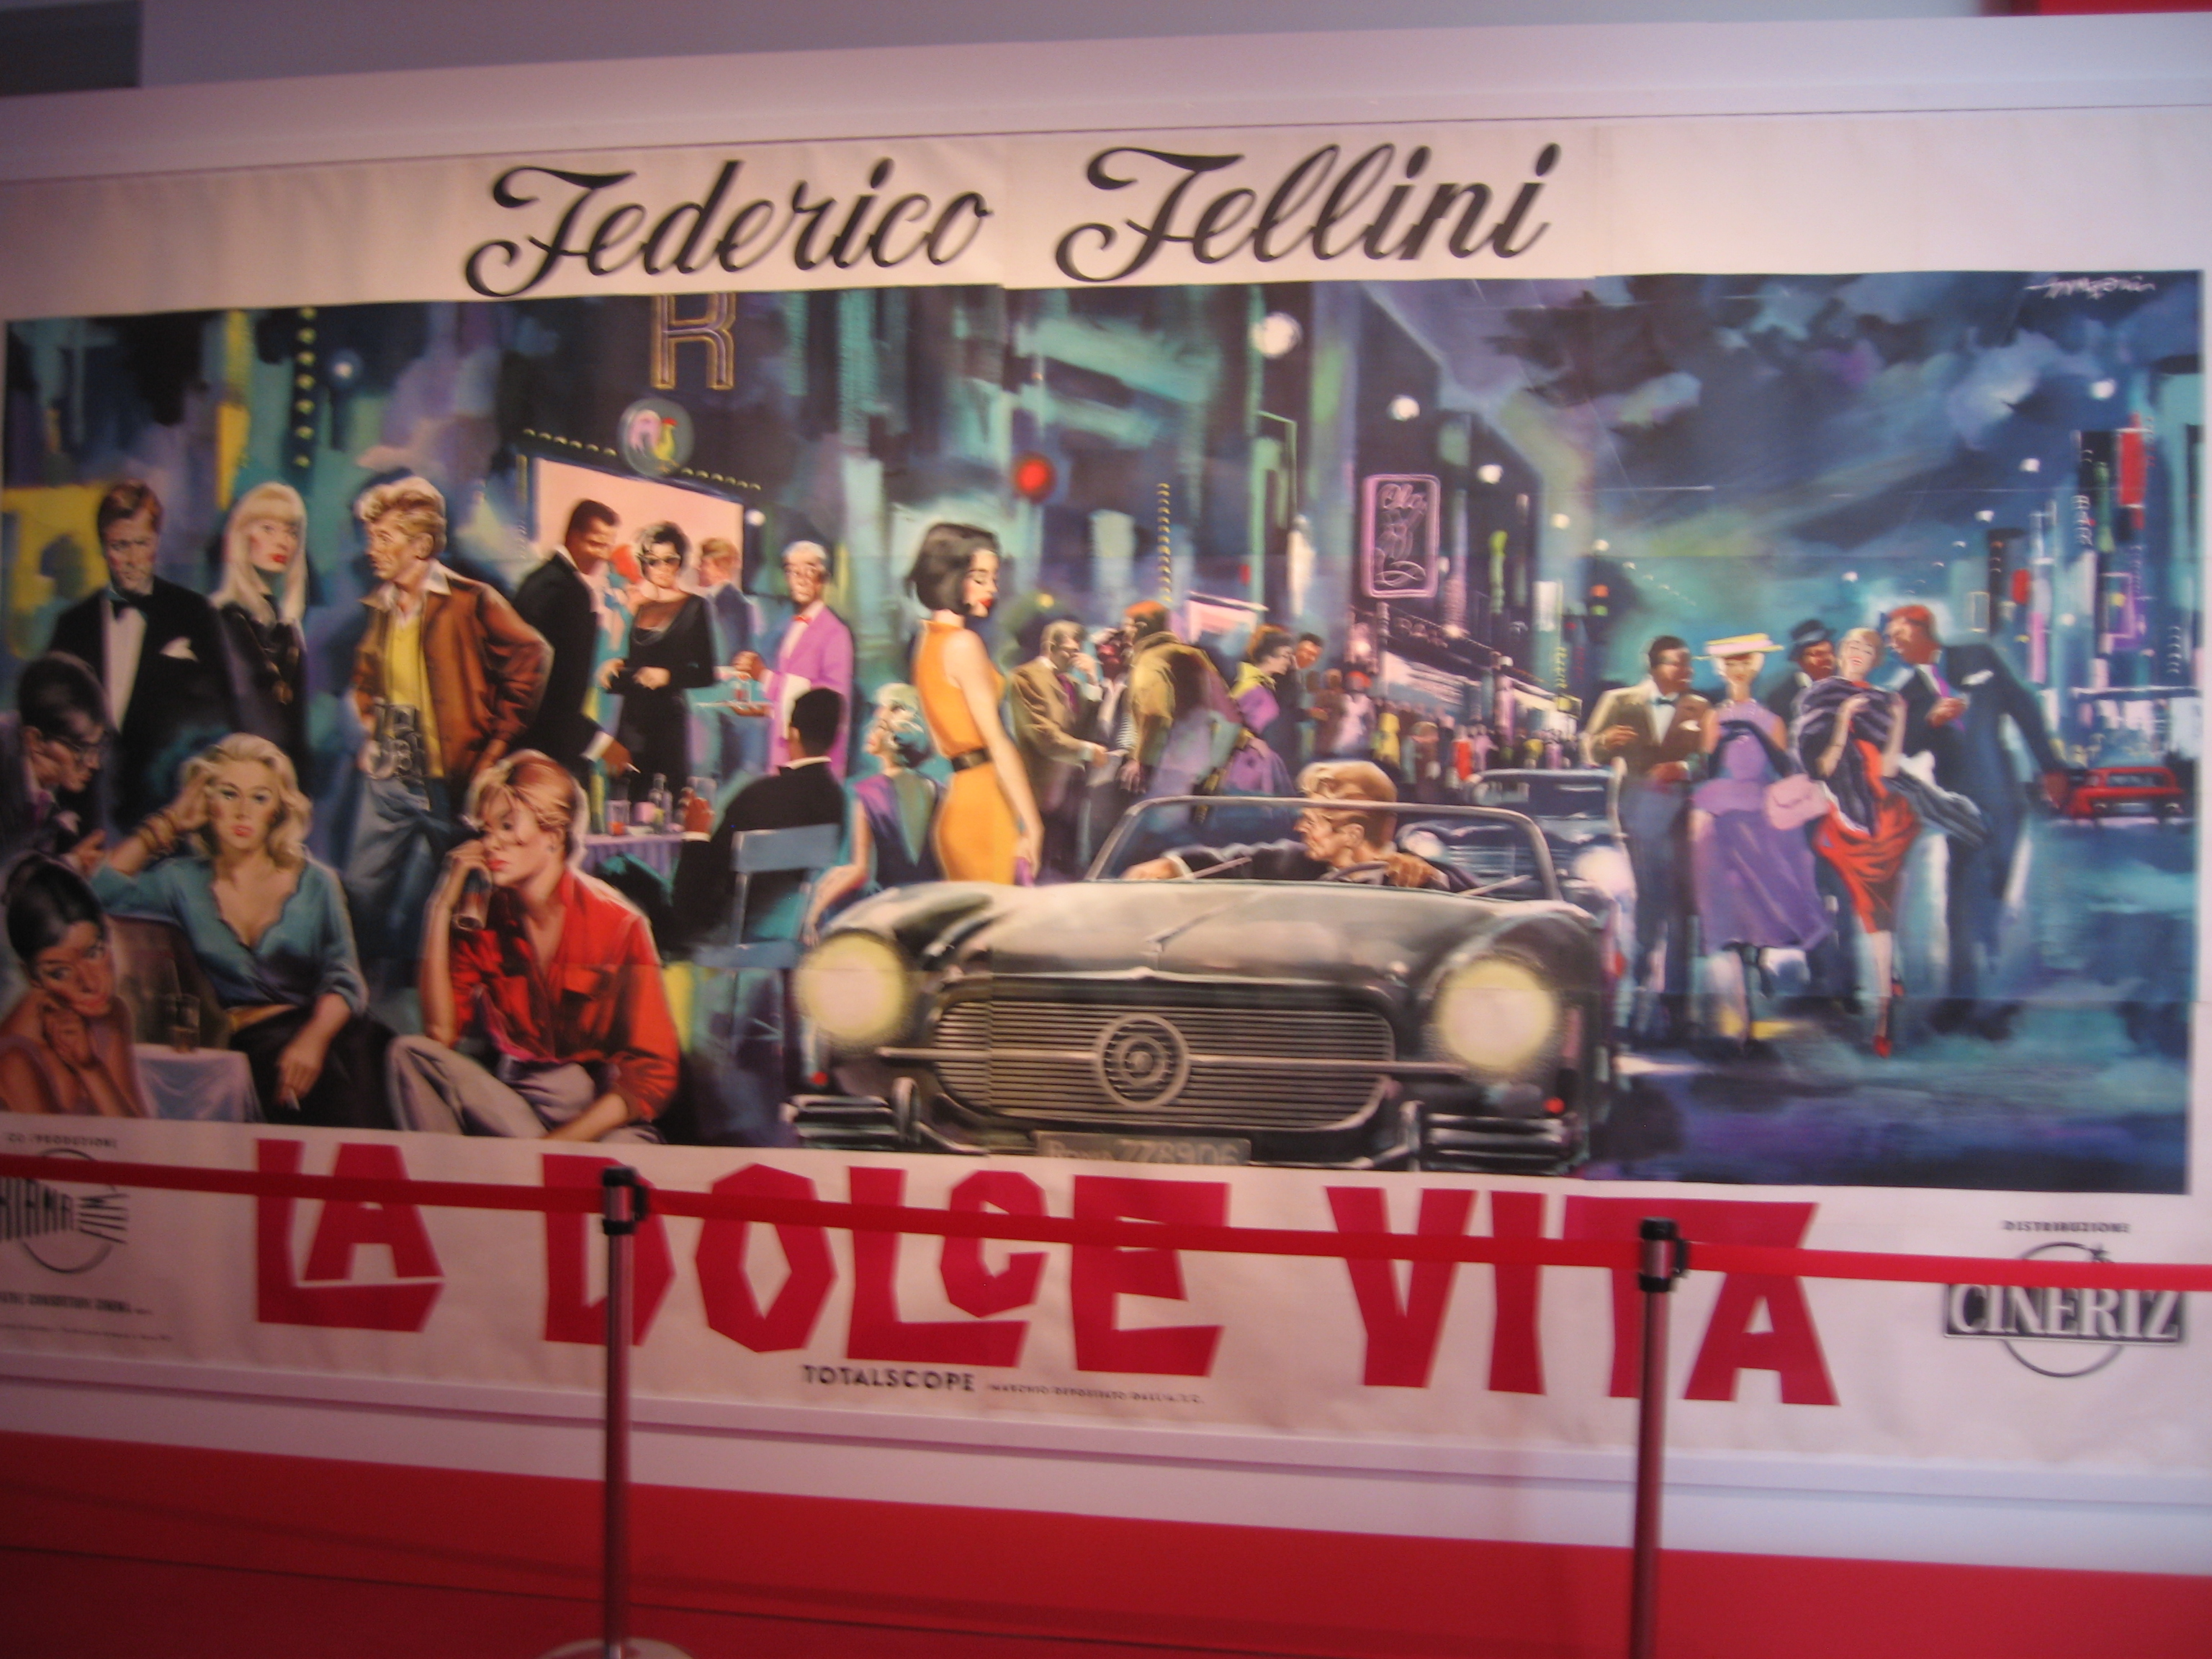 La Dolce Vita at the Fellini Exhibit